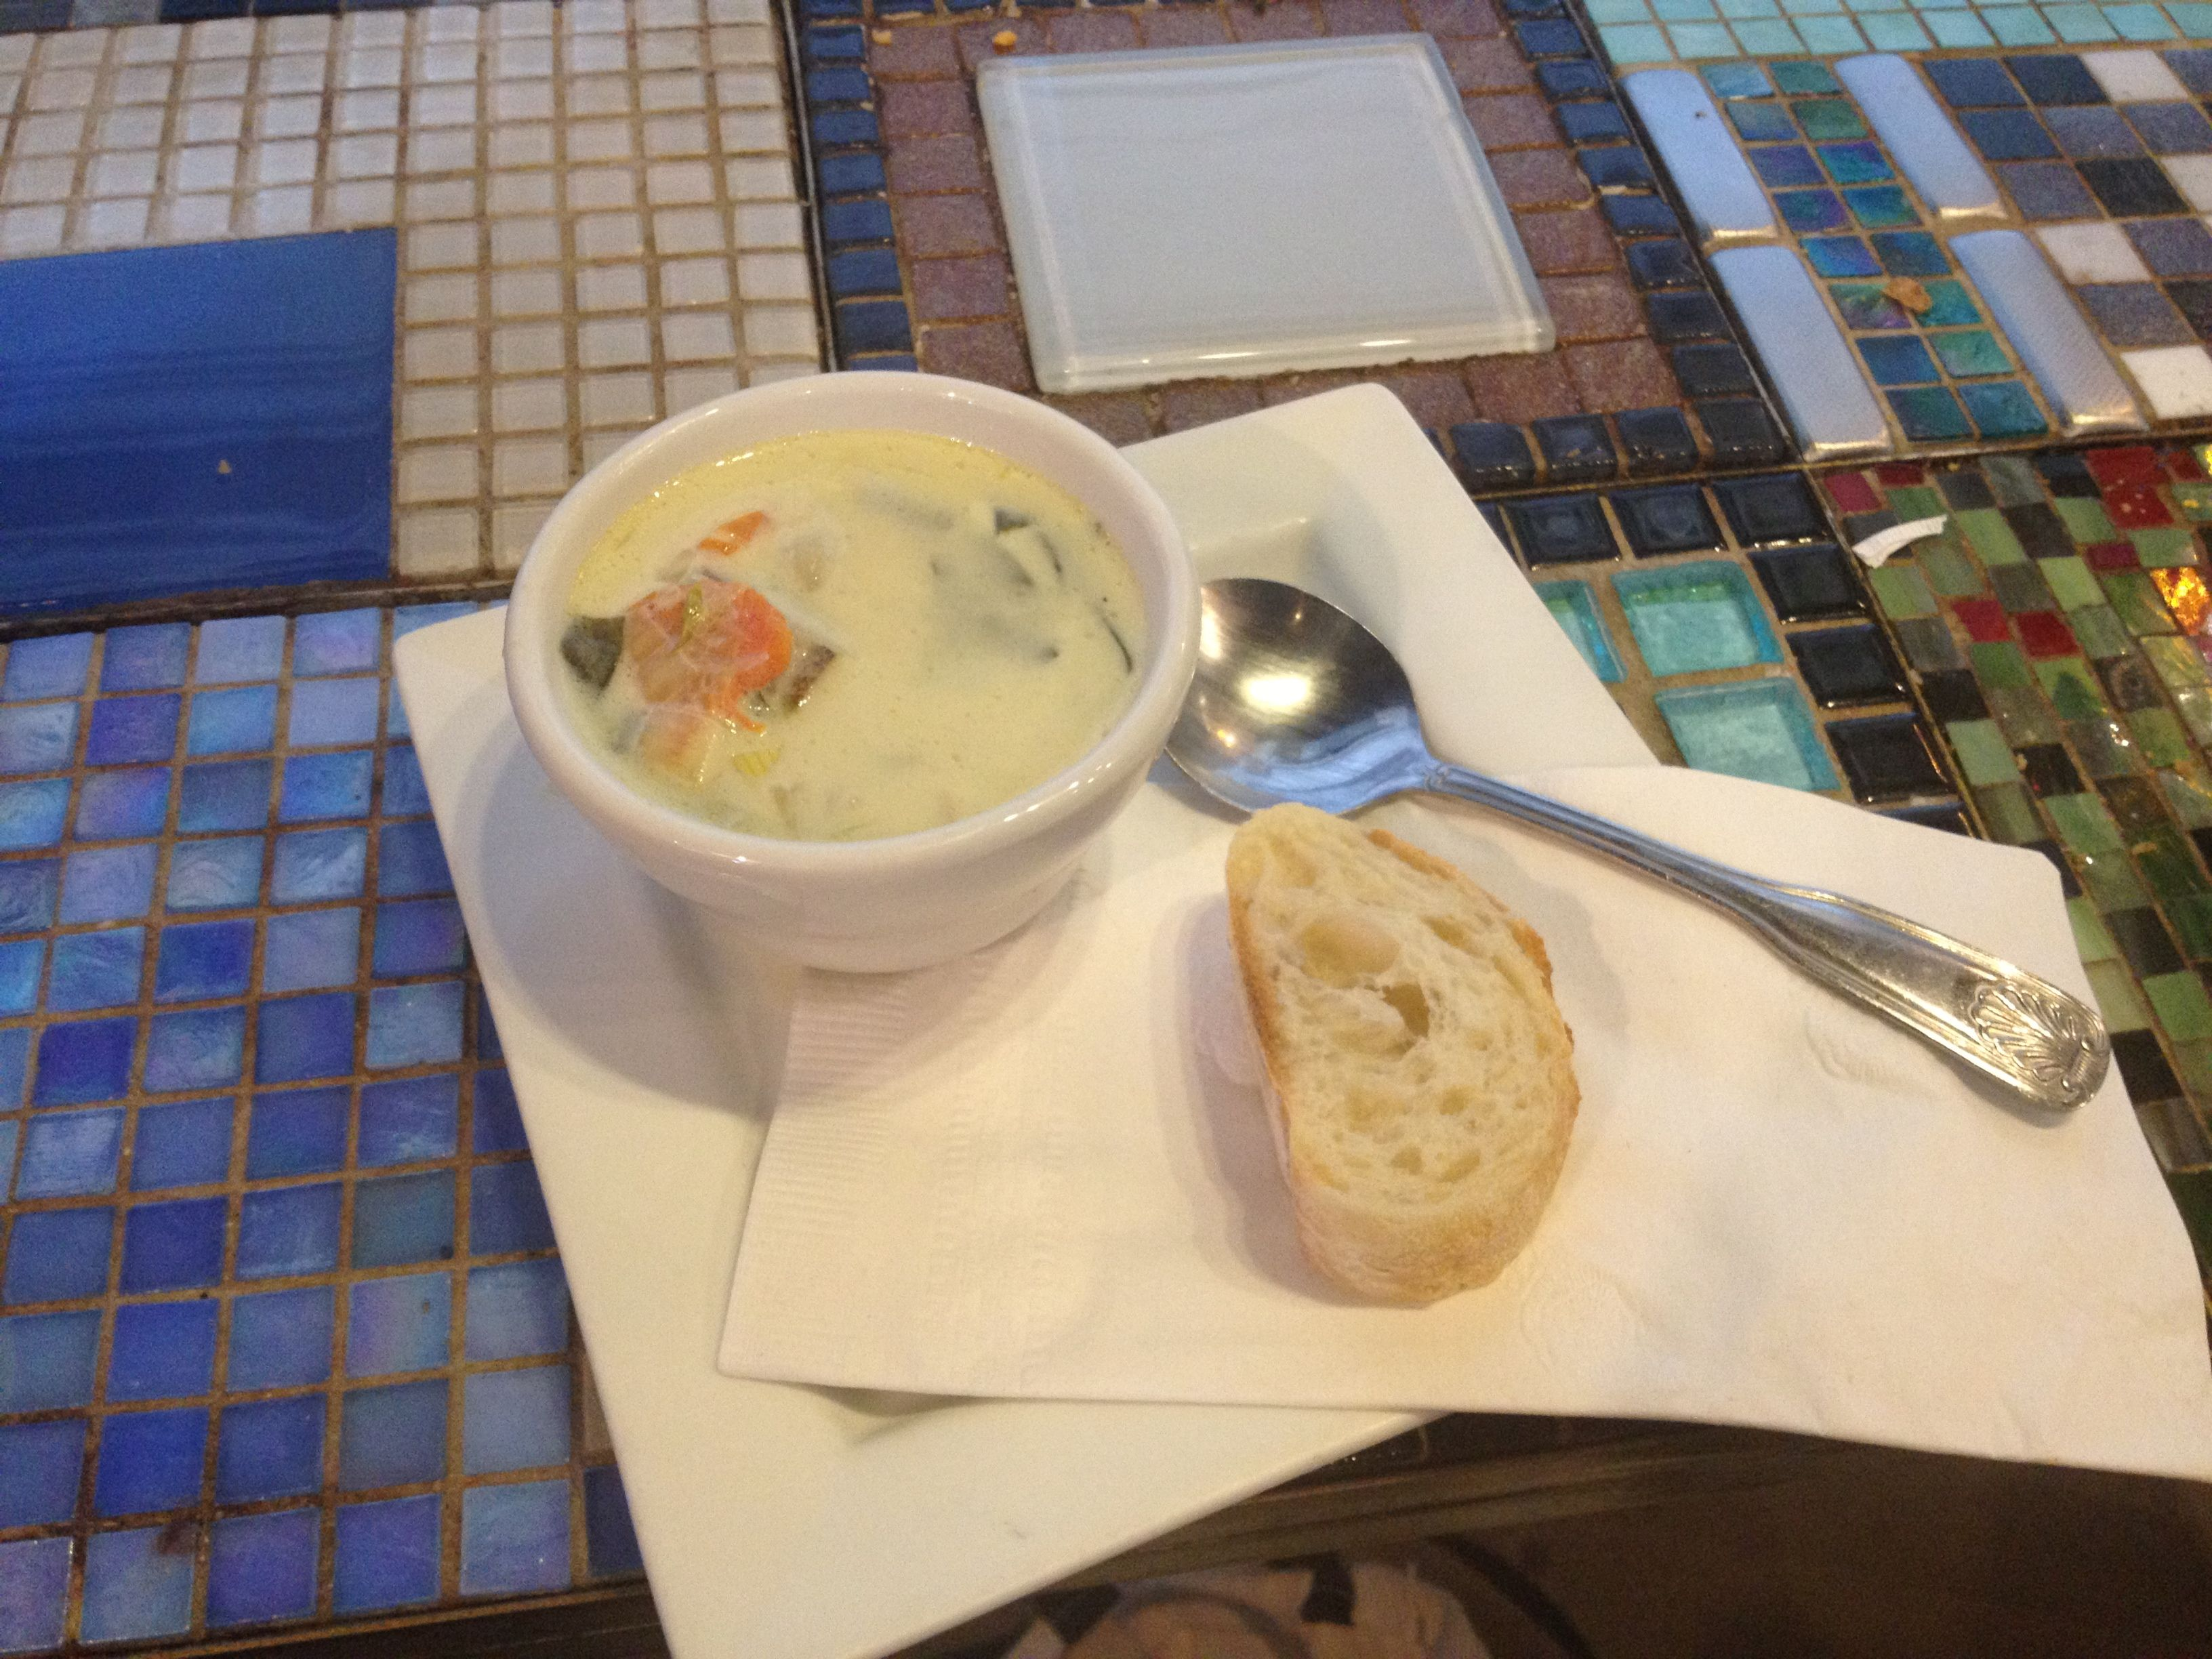 Delicious Spinach Asparagus Soup At Amelieu0027s French Bakery In Charlotte, NC!